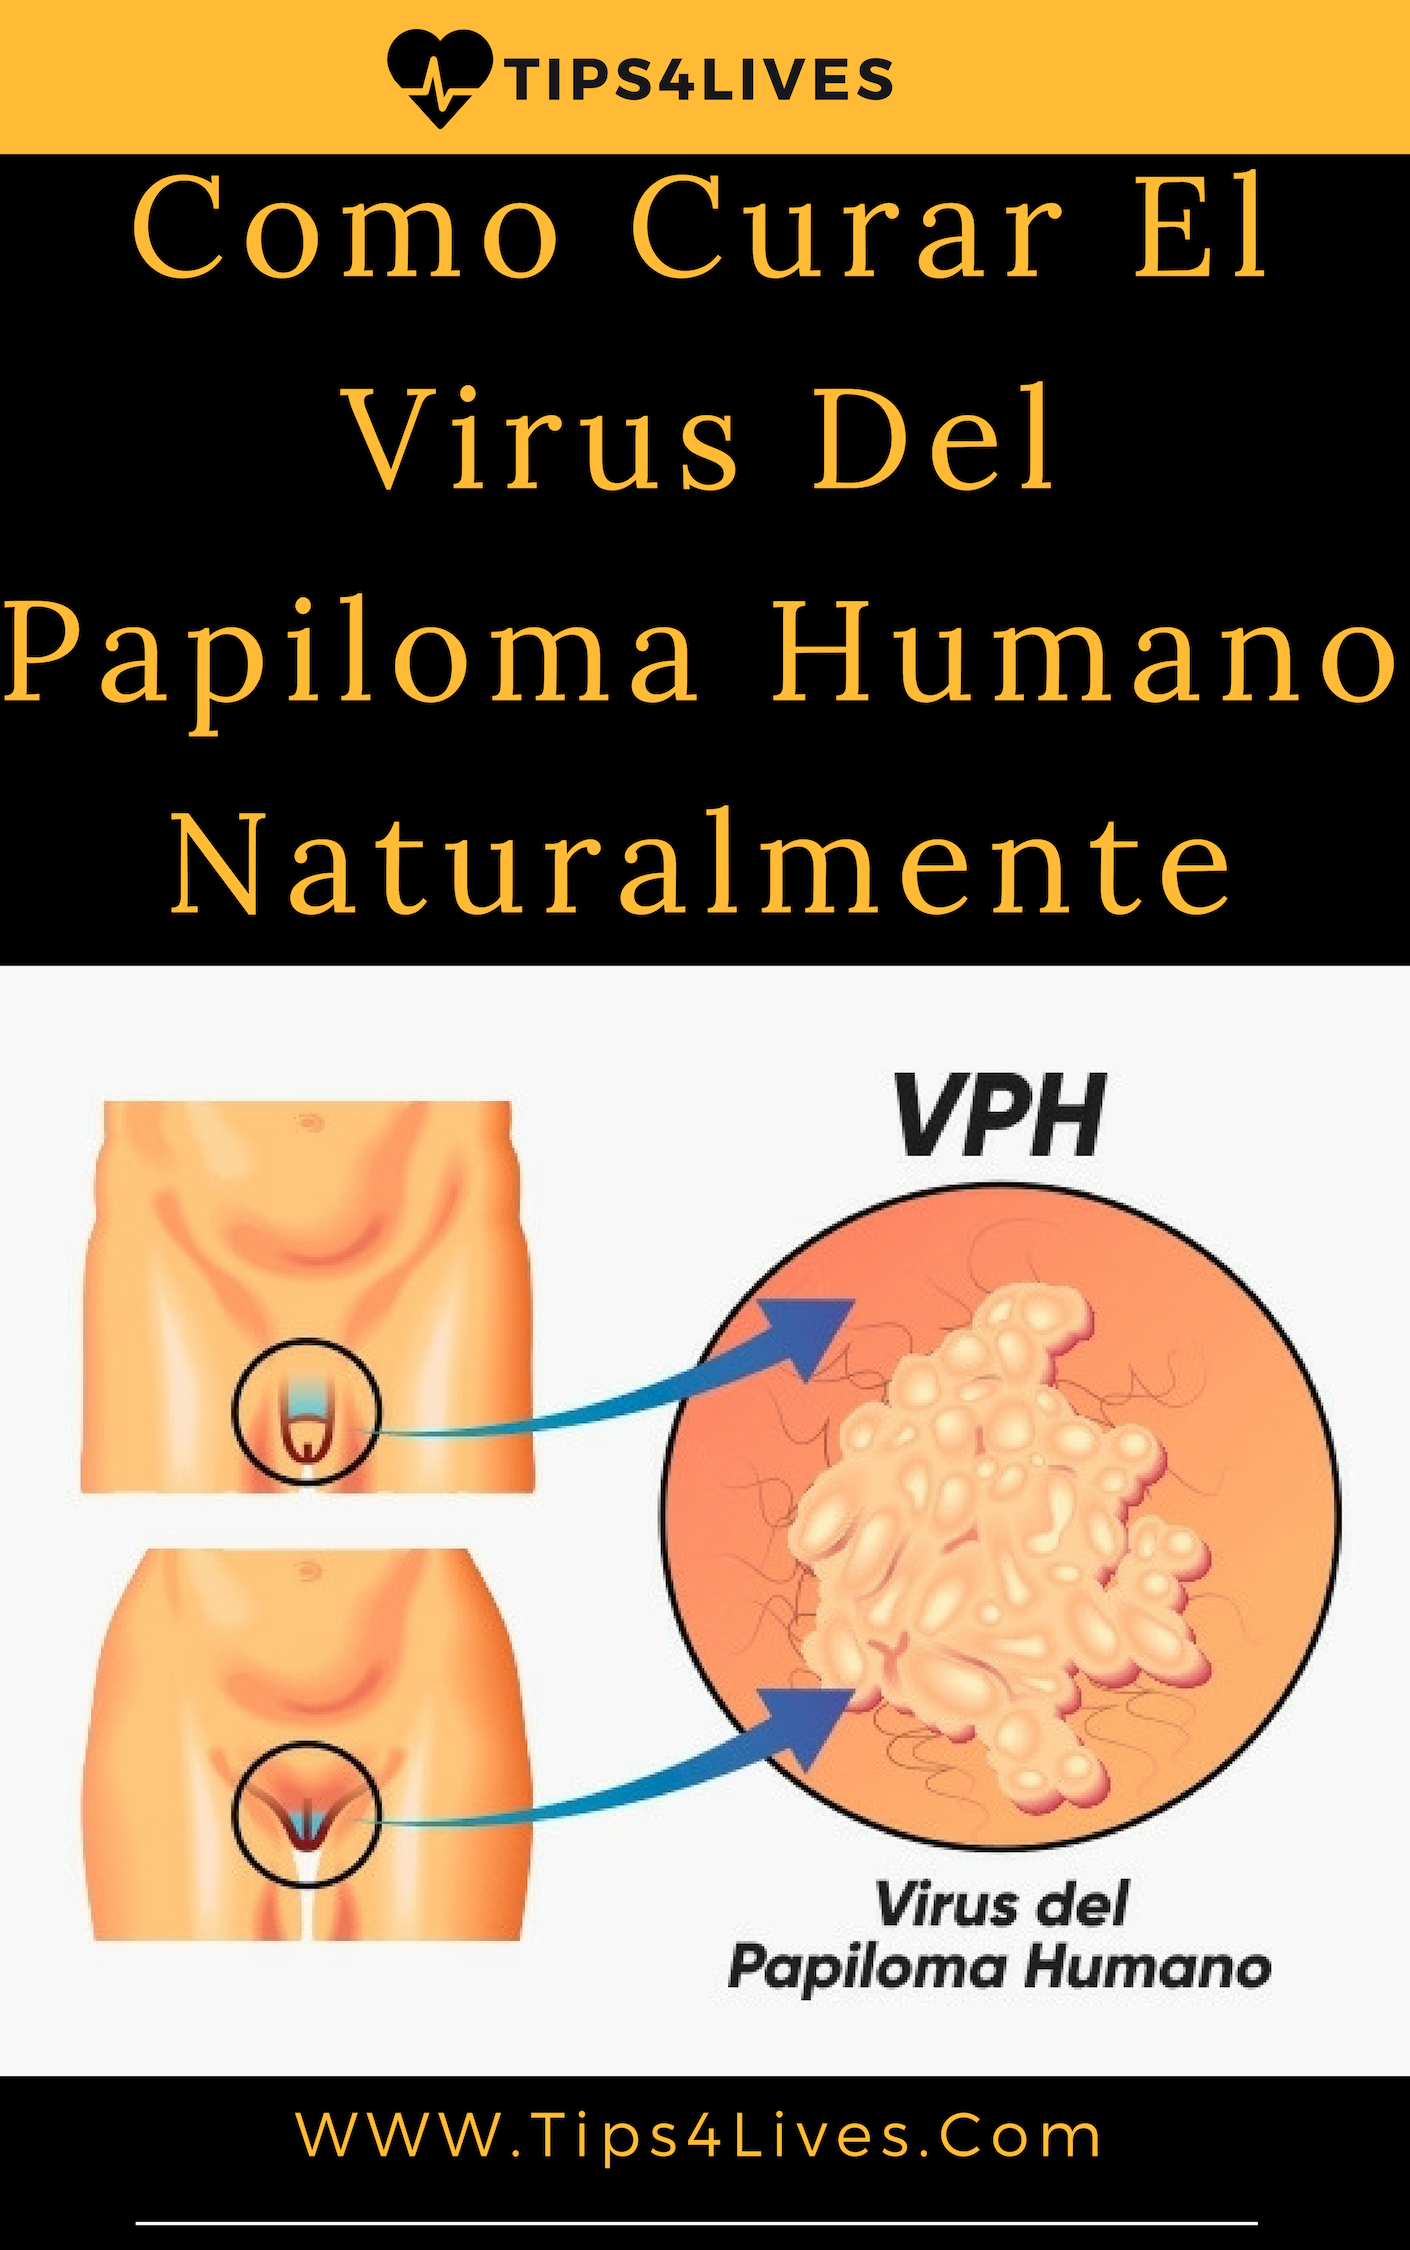 papiloma humano en hombres deteccion papillary thyroid cancer young adults